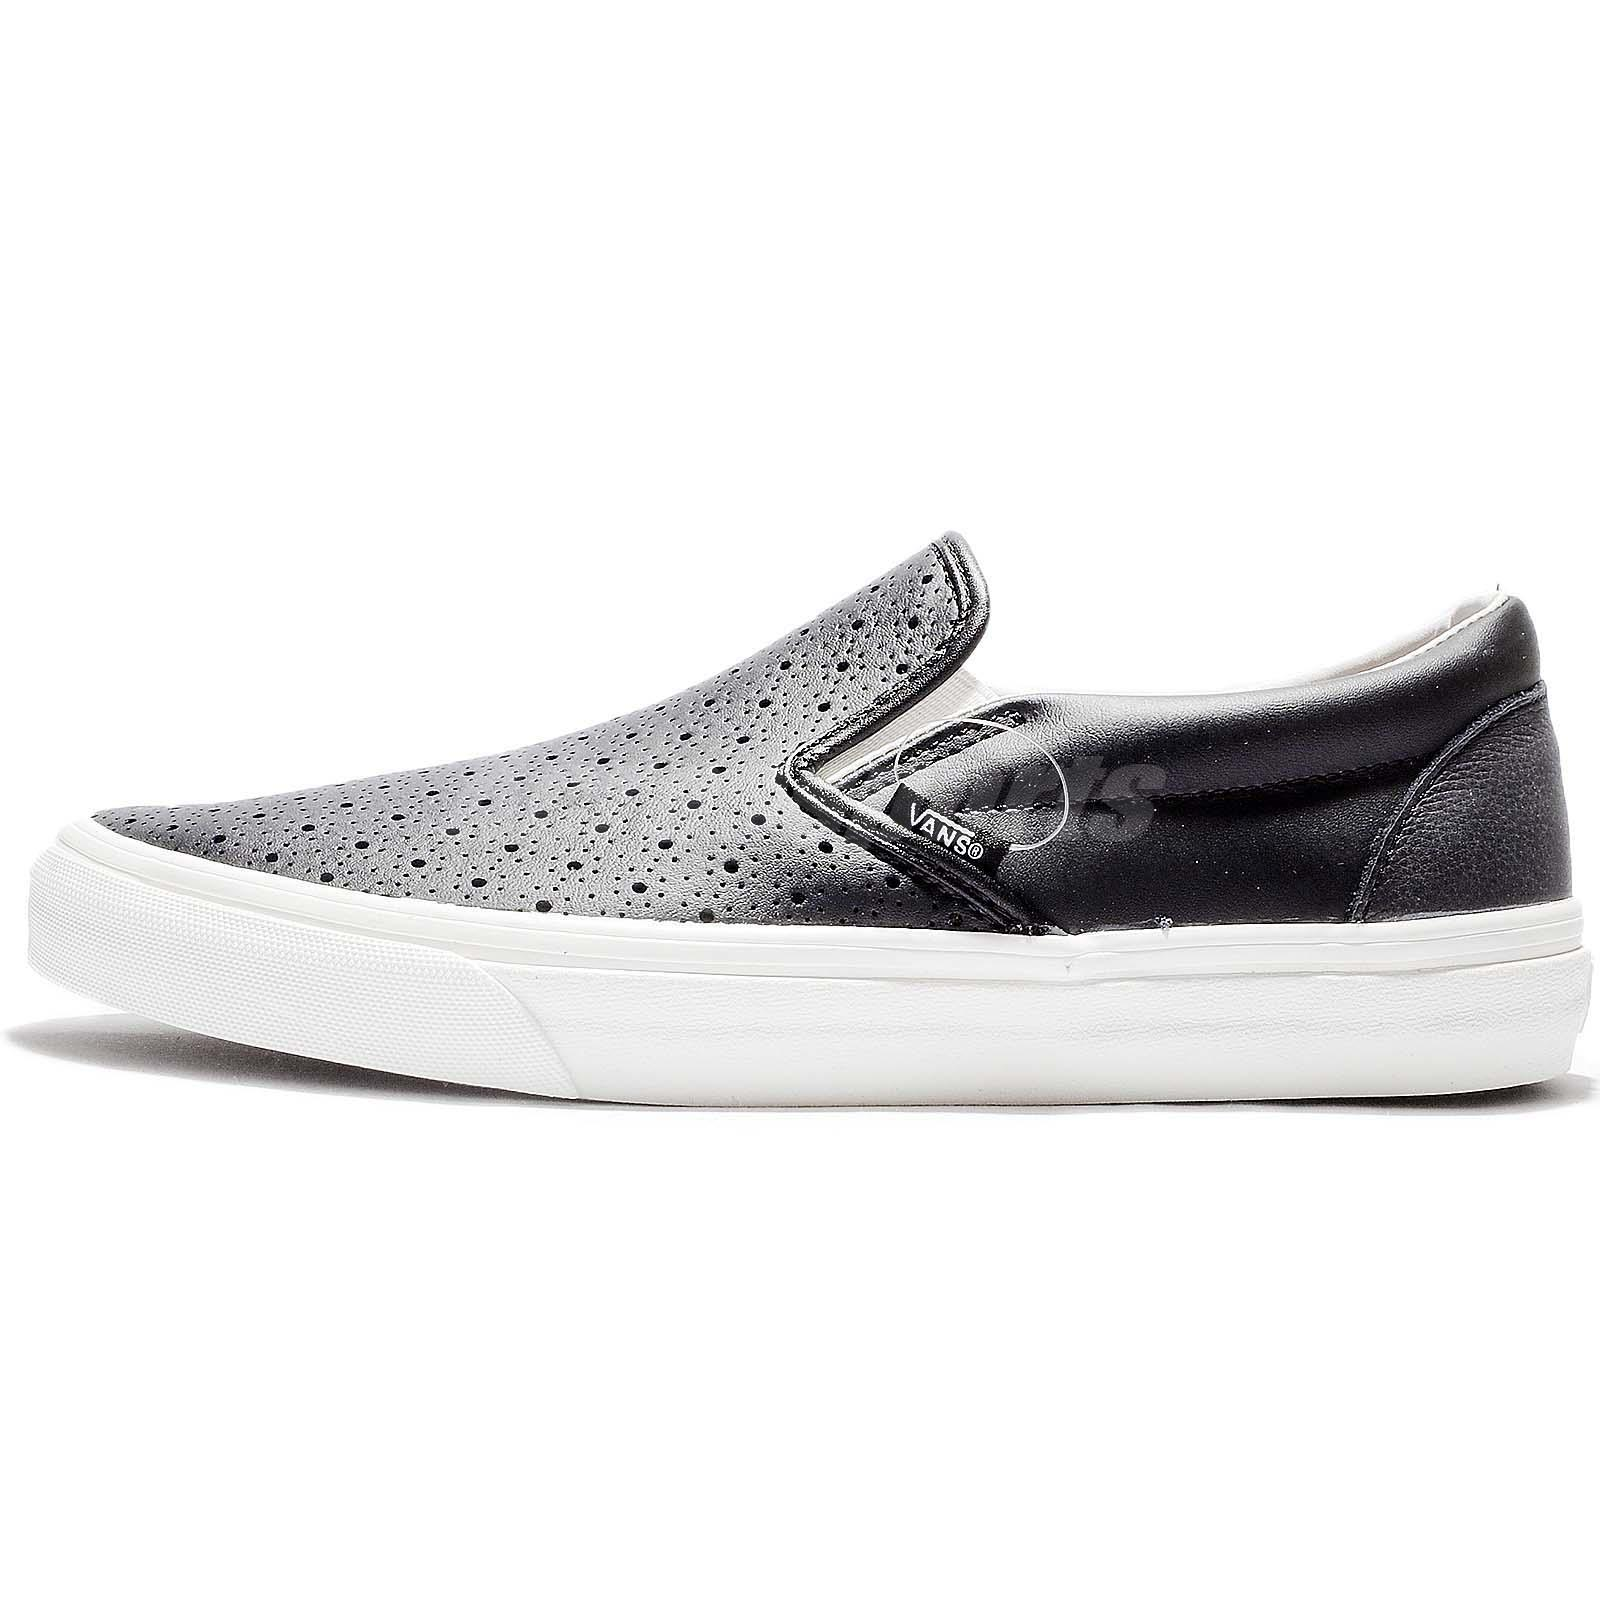 72dcb667acb0f5 Vans Classic Slip-On Black White Leather Men Casual Shoes Sneakers 71010822